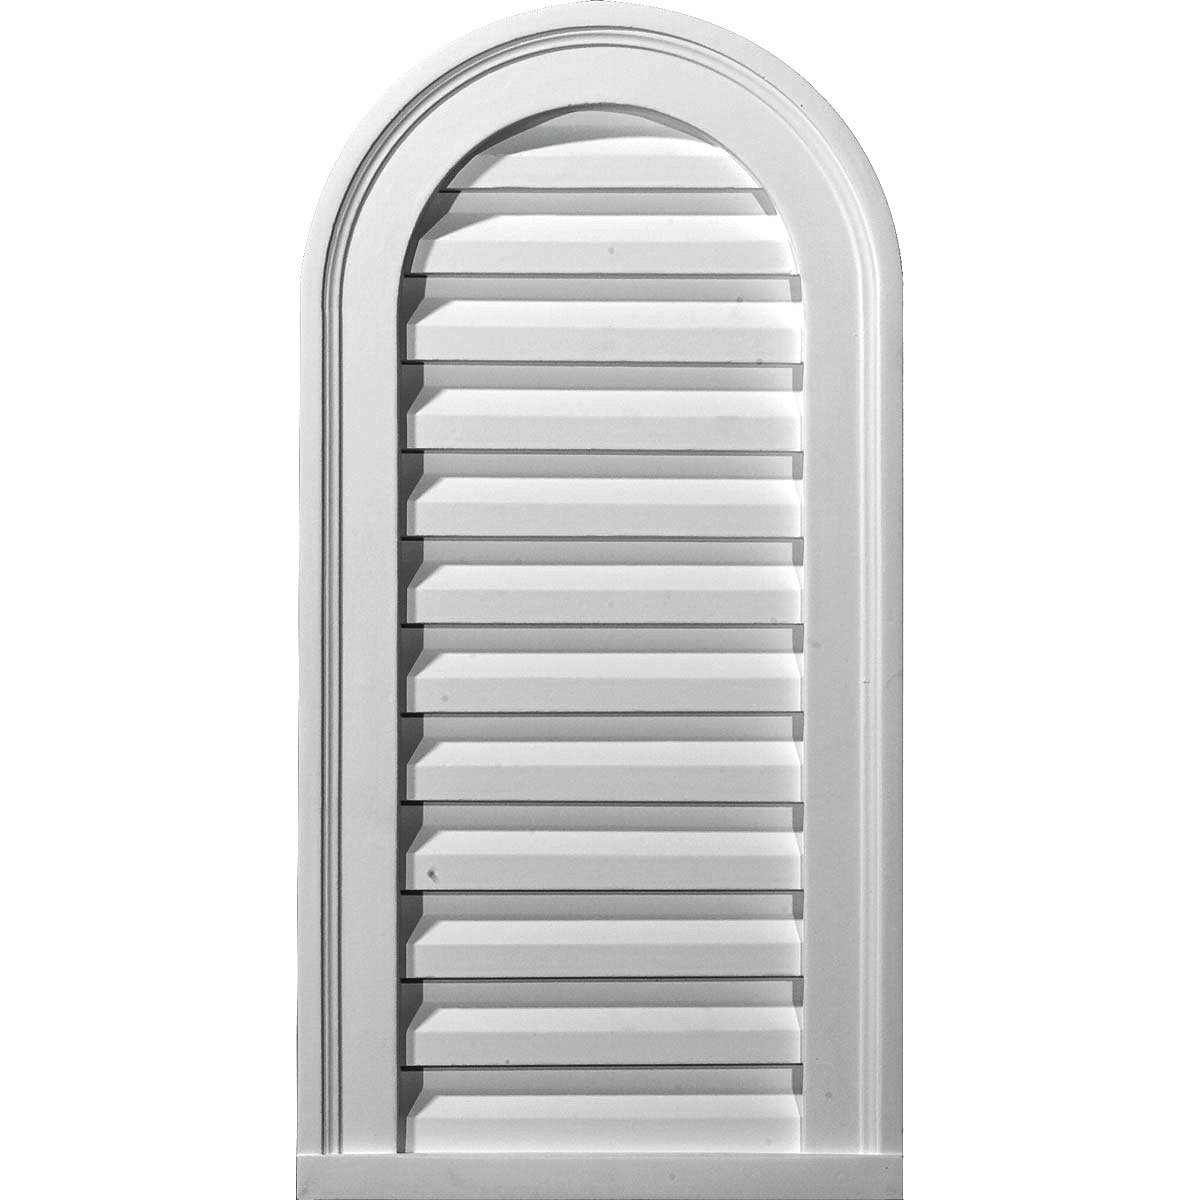 """Ekena Millwork GVCA18X26F Cathedral Urethane Gable Vent Louver, Functional, 18""""W x 26""""H x 1 1/4""""P, Primed"""